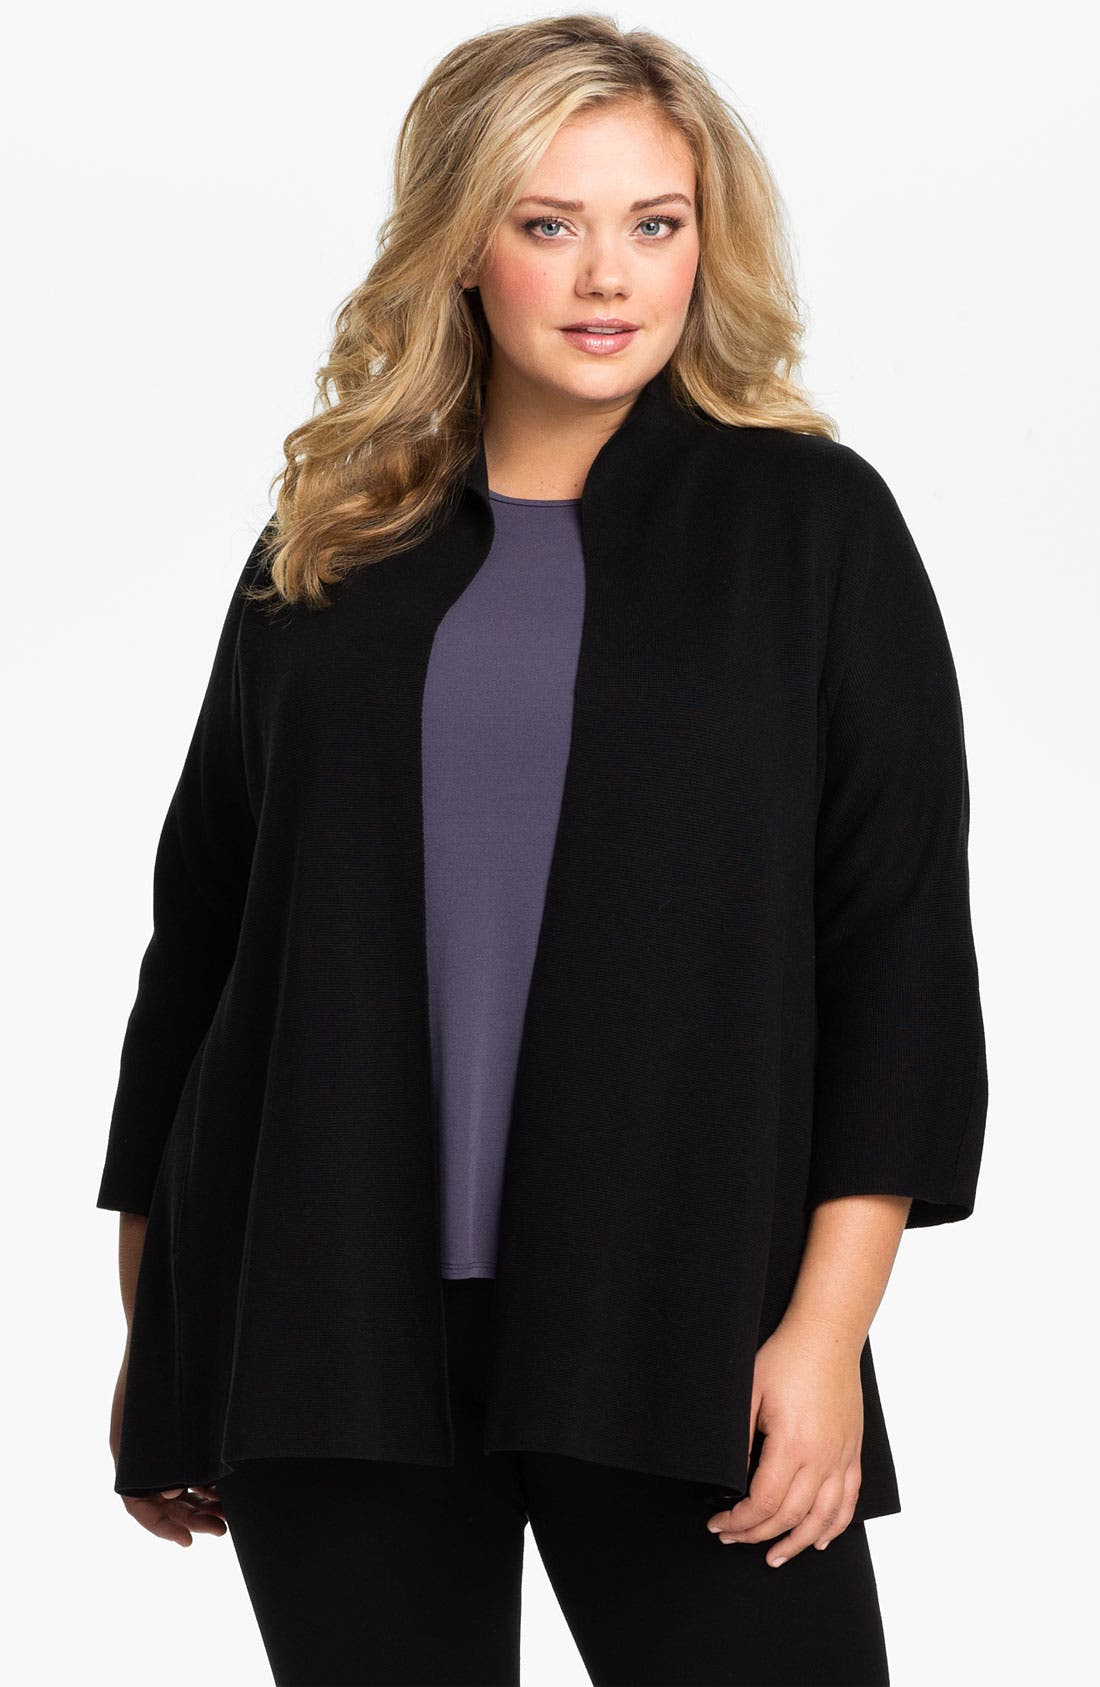 Alternate Image 1 Selected - Eileen Fisher Silk Blend Knit Jacket (Plus)